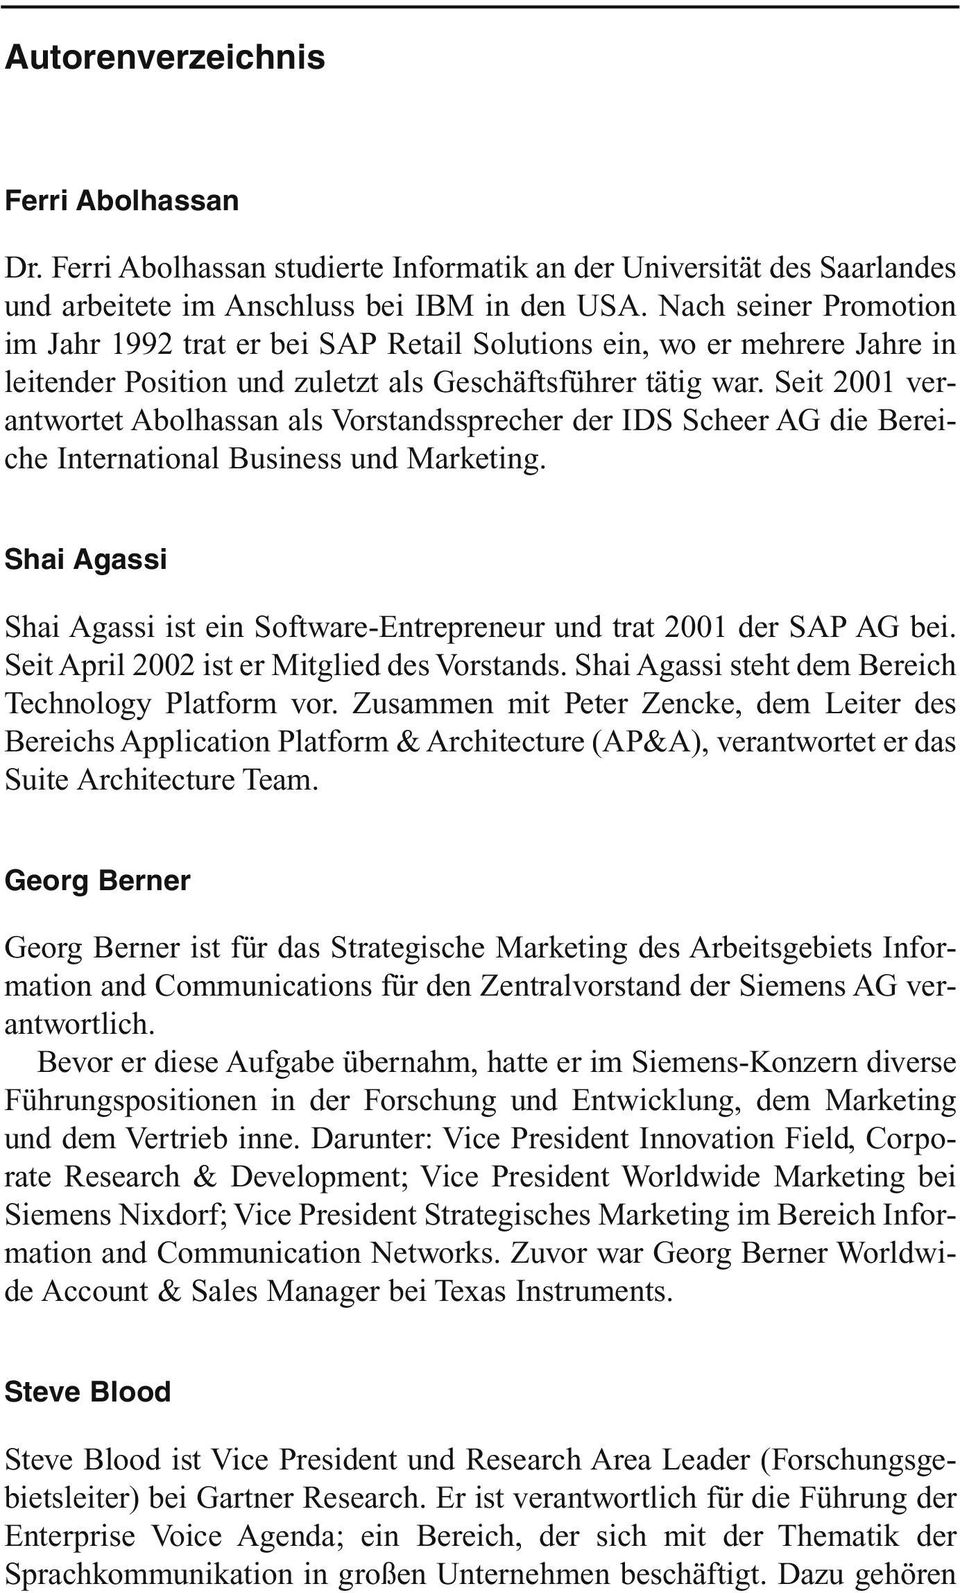 Seit 2001 verantwortet Abolhassan als Vorstandssprecher der IDS Scheer AG die Bereiche International Business und Marketing.